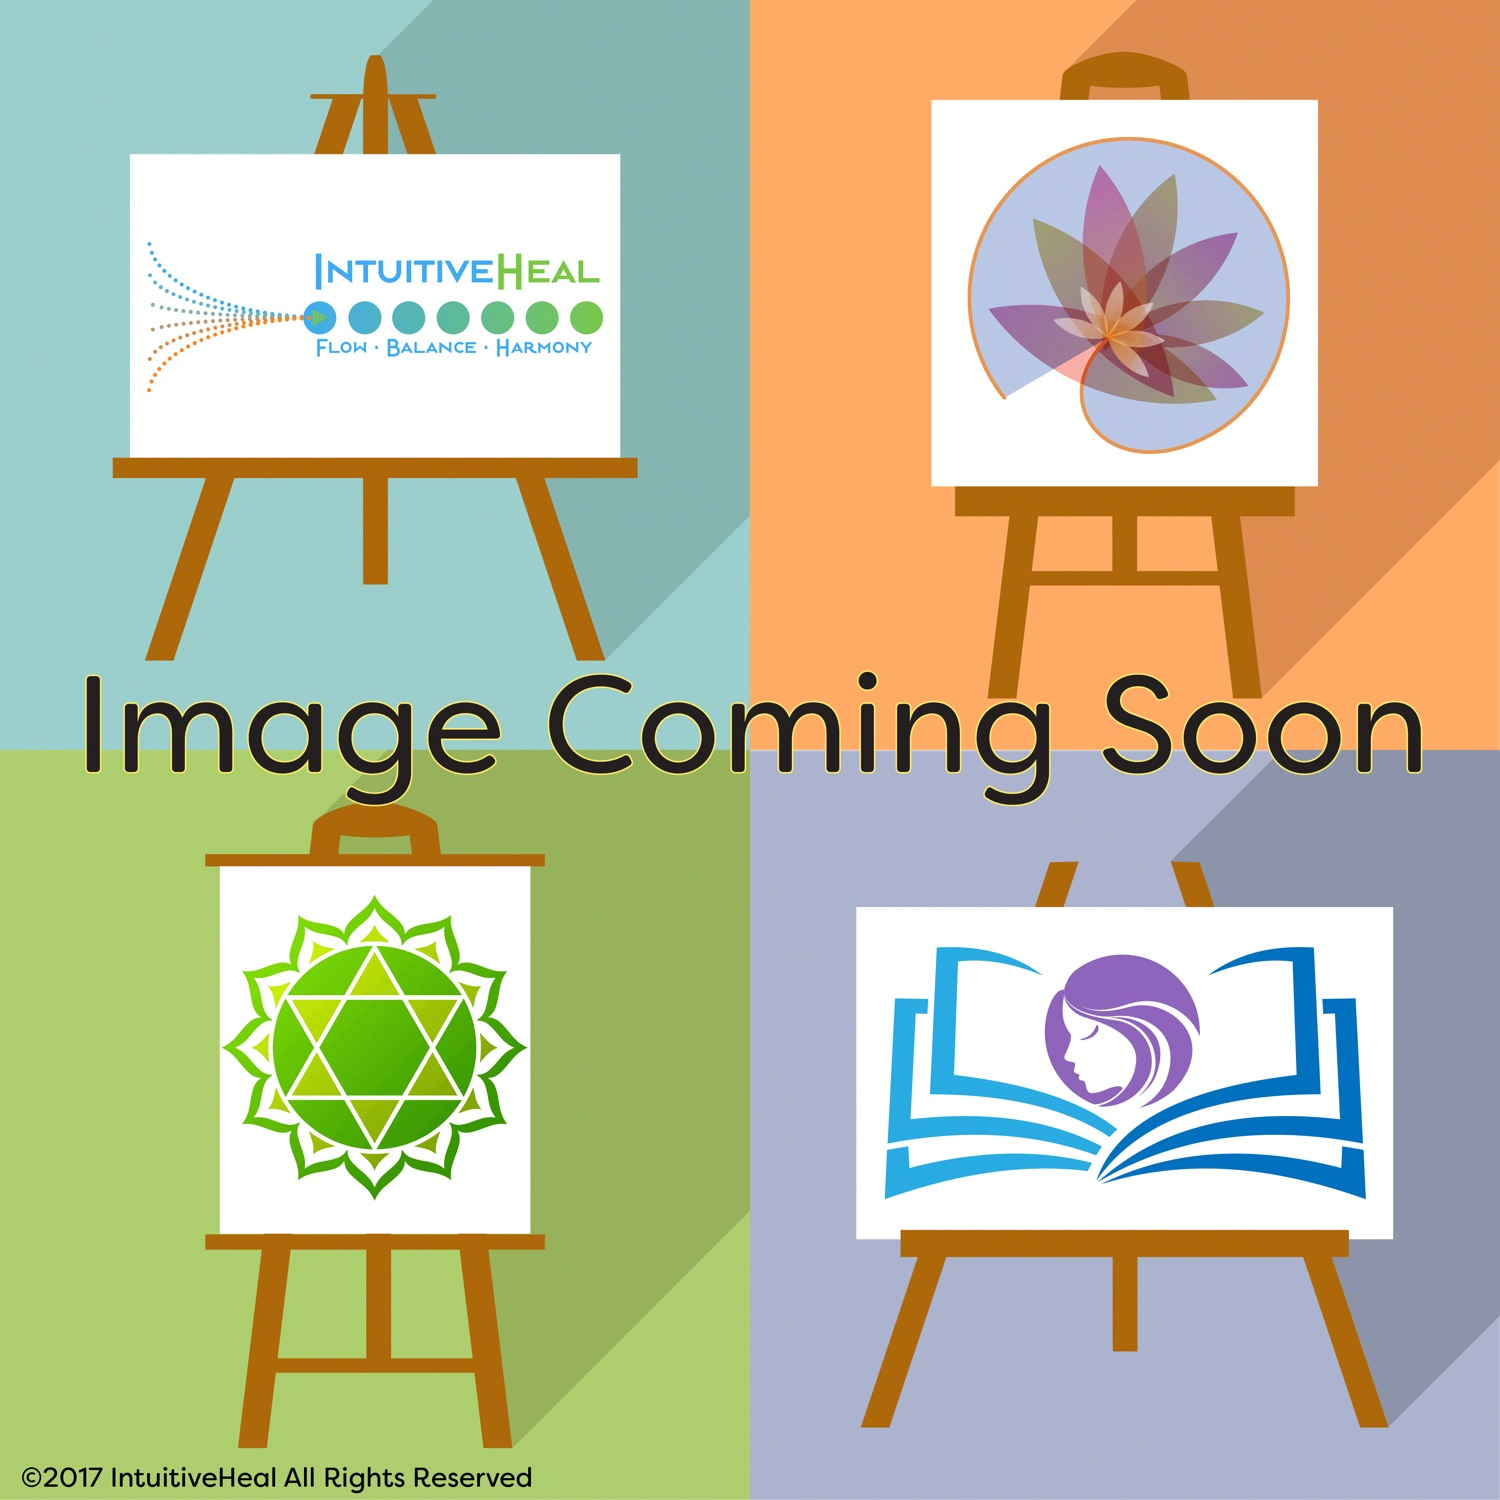 """Image of art on easels and text saying """"Image Coming Soon"""""""